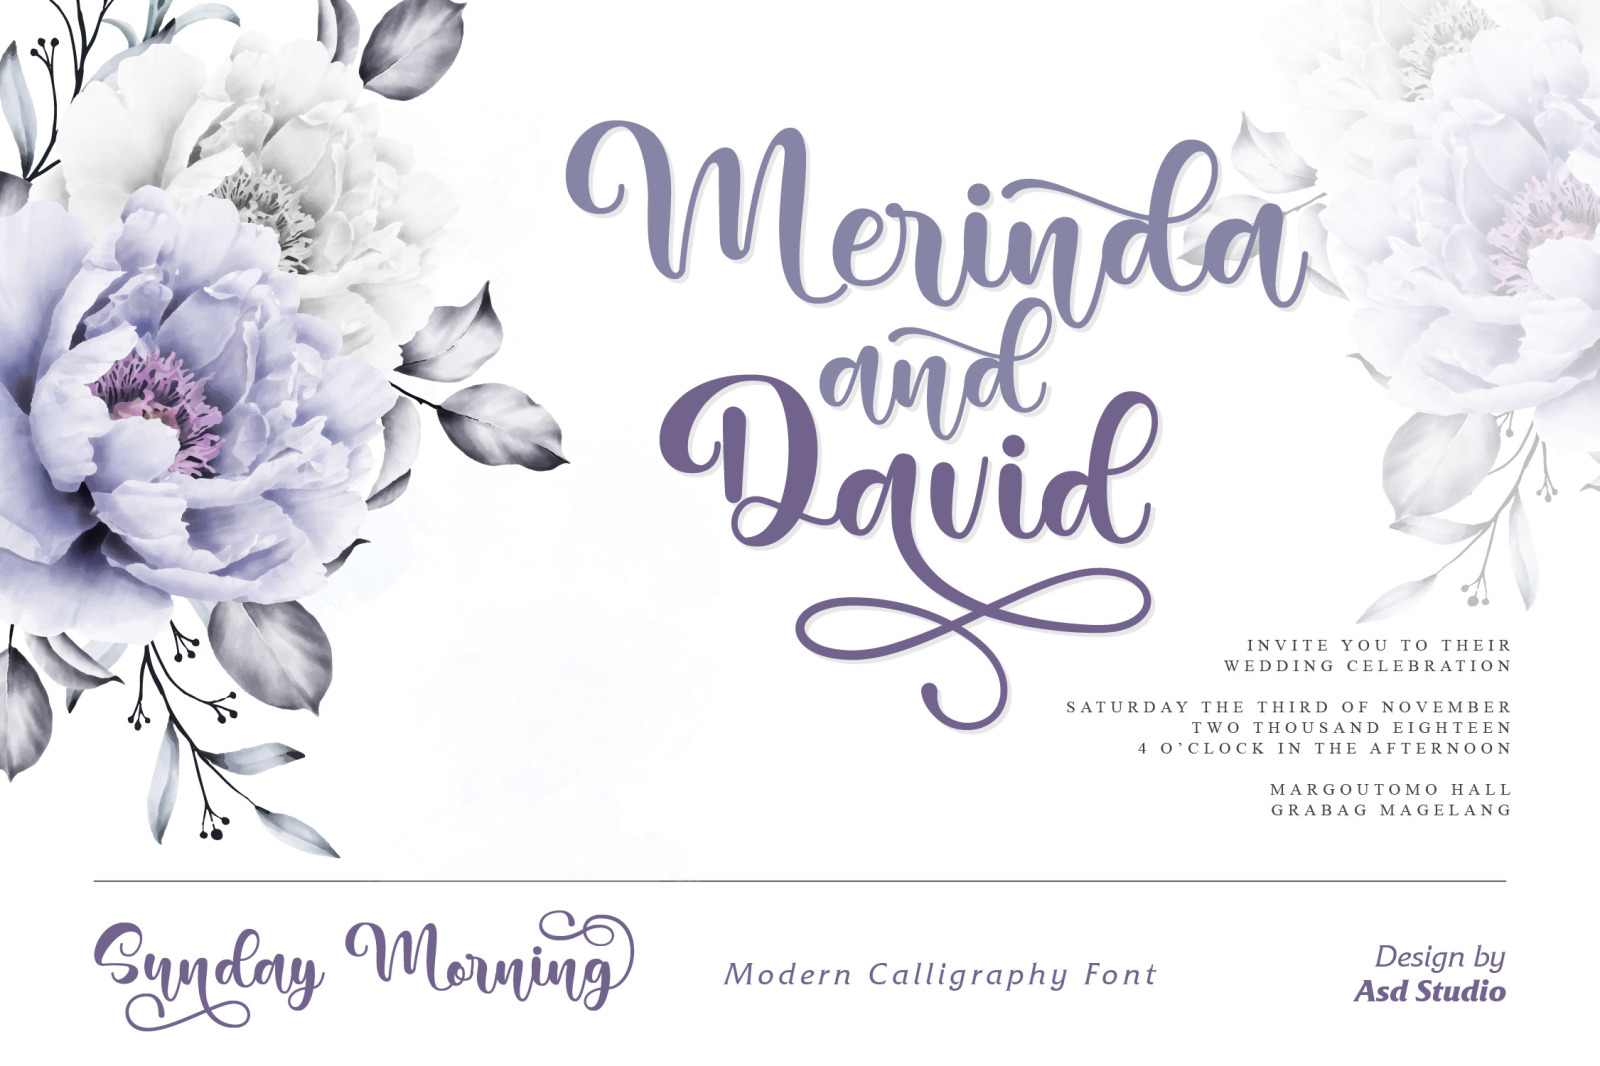 Sunday Morning - Modern Calligraphy Font